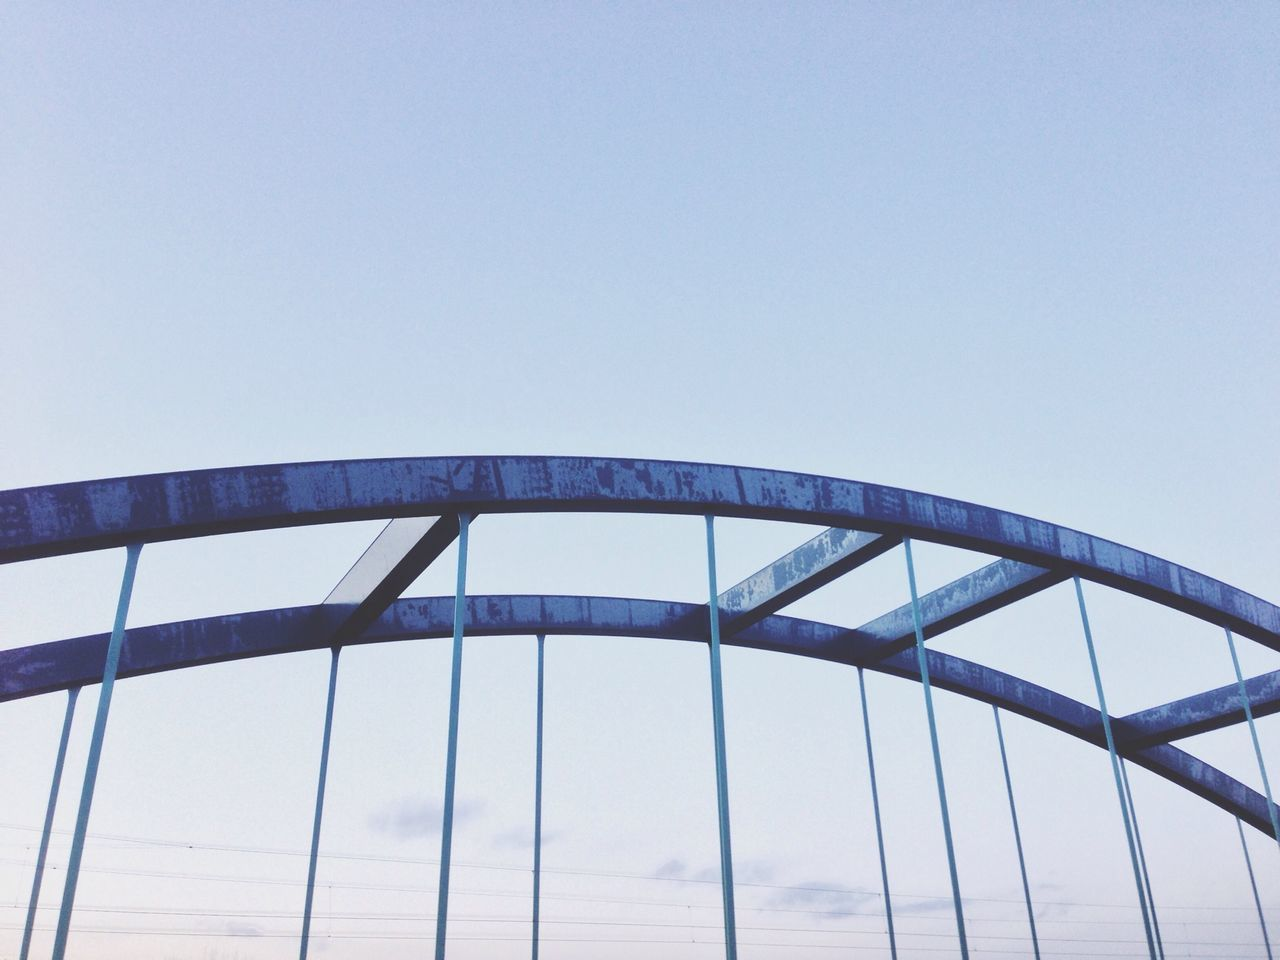 Beautiful stock photos of metal, Arch Bridge, Architecture, Built Structure, Clear Sky